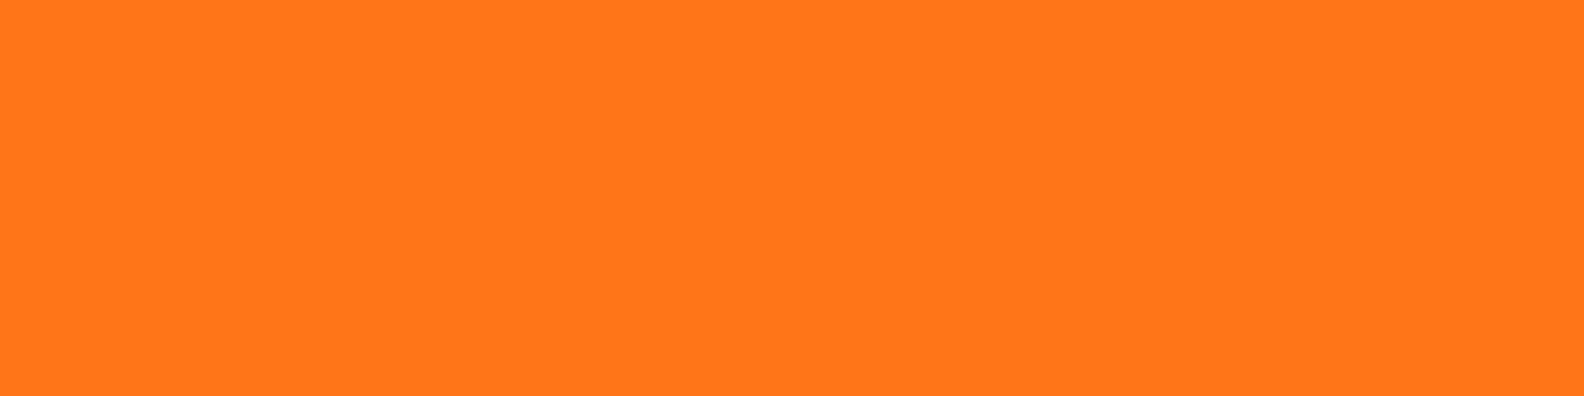 1584x396 Pumpkin Solid Color Background